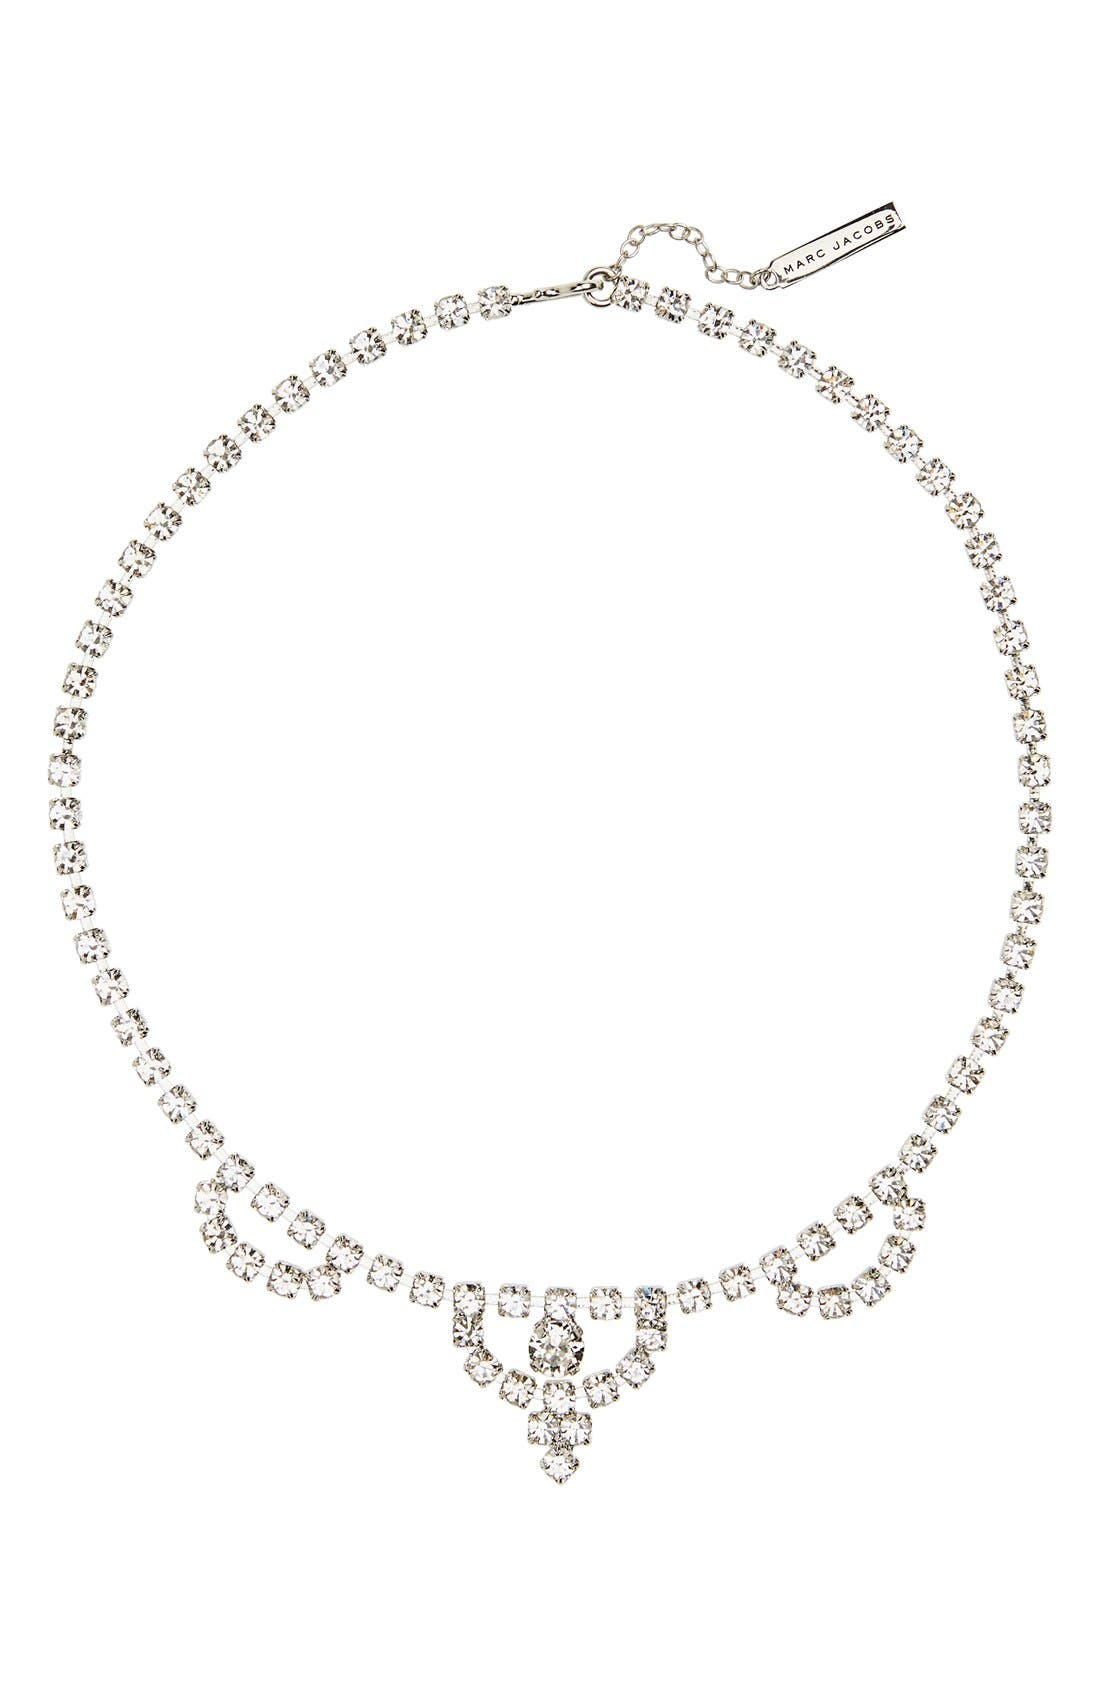 Main Image - MARC JACOBS Crystal Bib Necklace